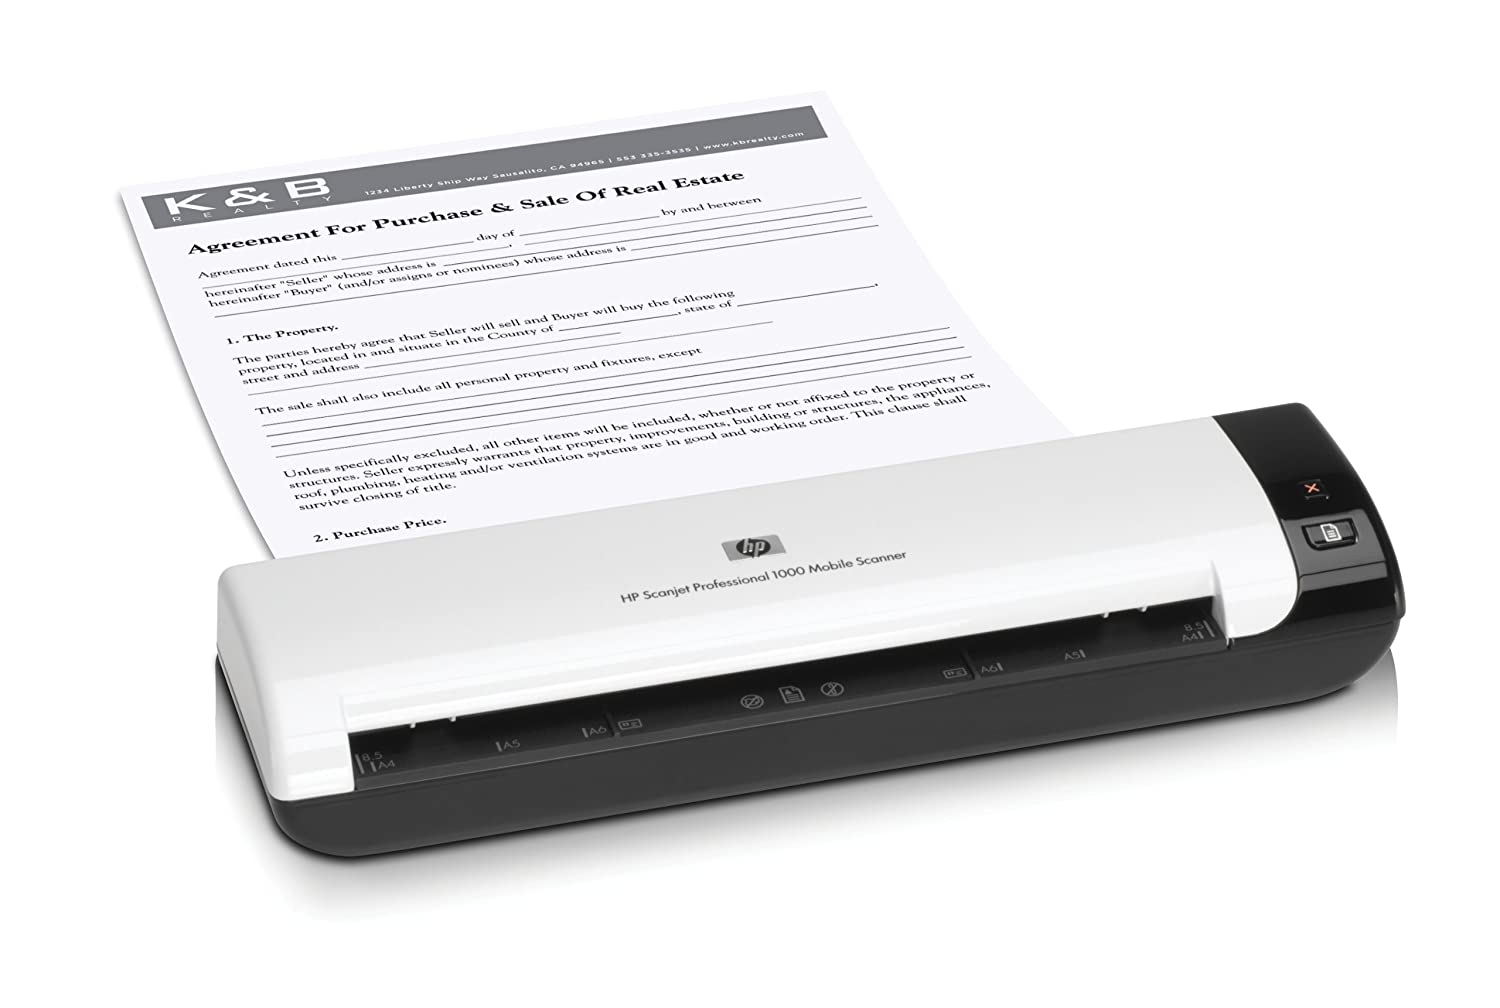 Amazon.com: HEWL2722A - Scanjet Professional 1000 Mobile Scanner: Electronics